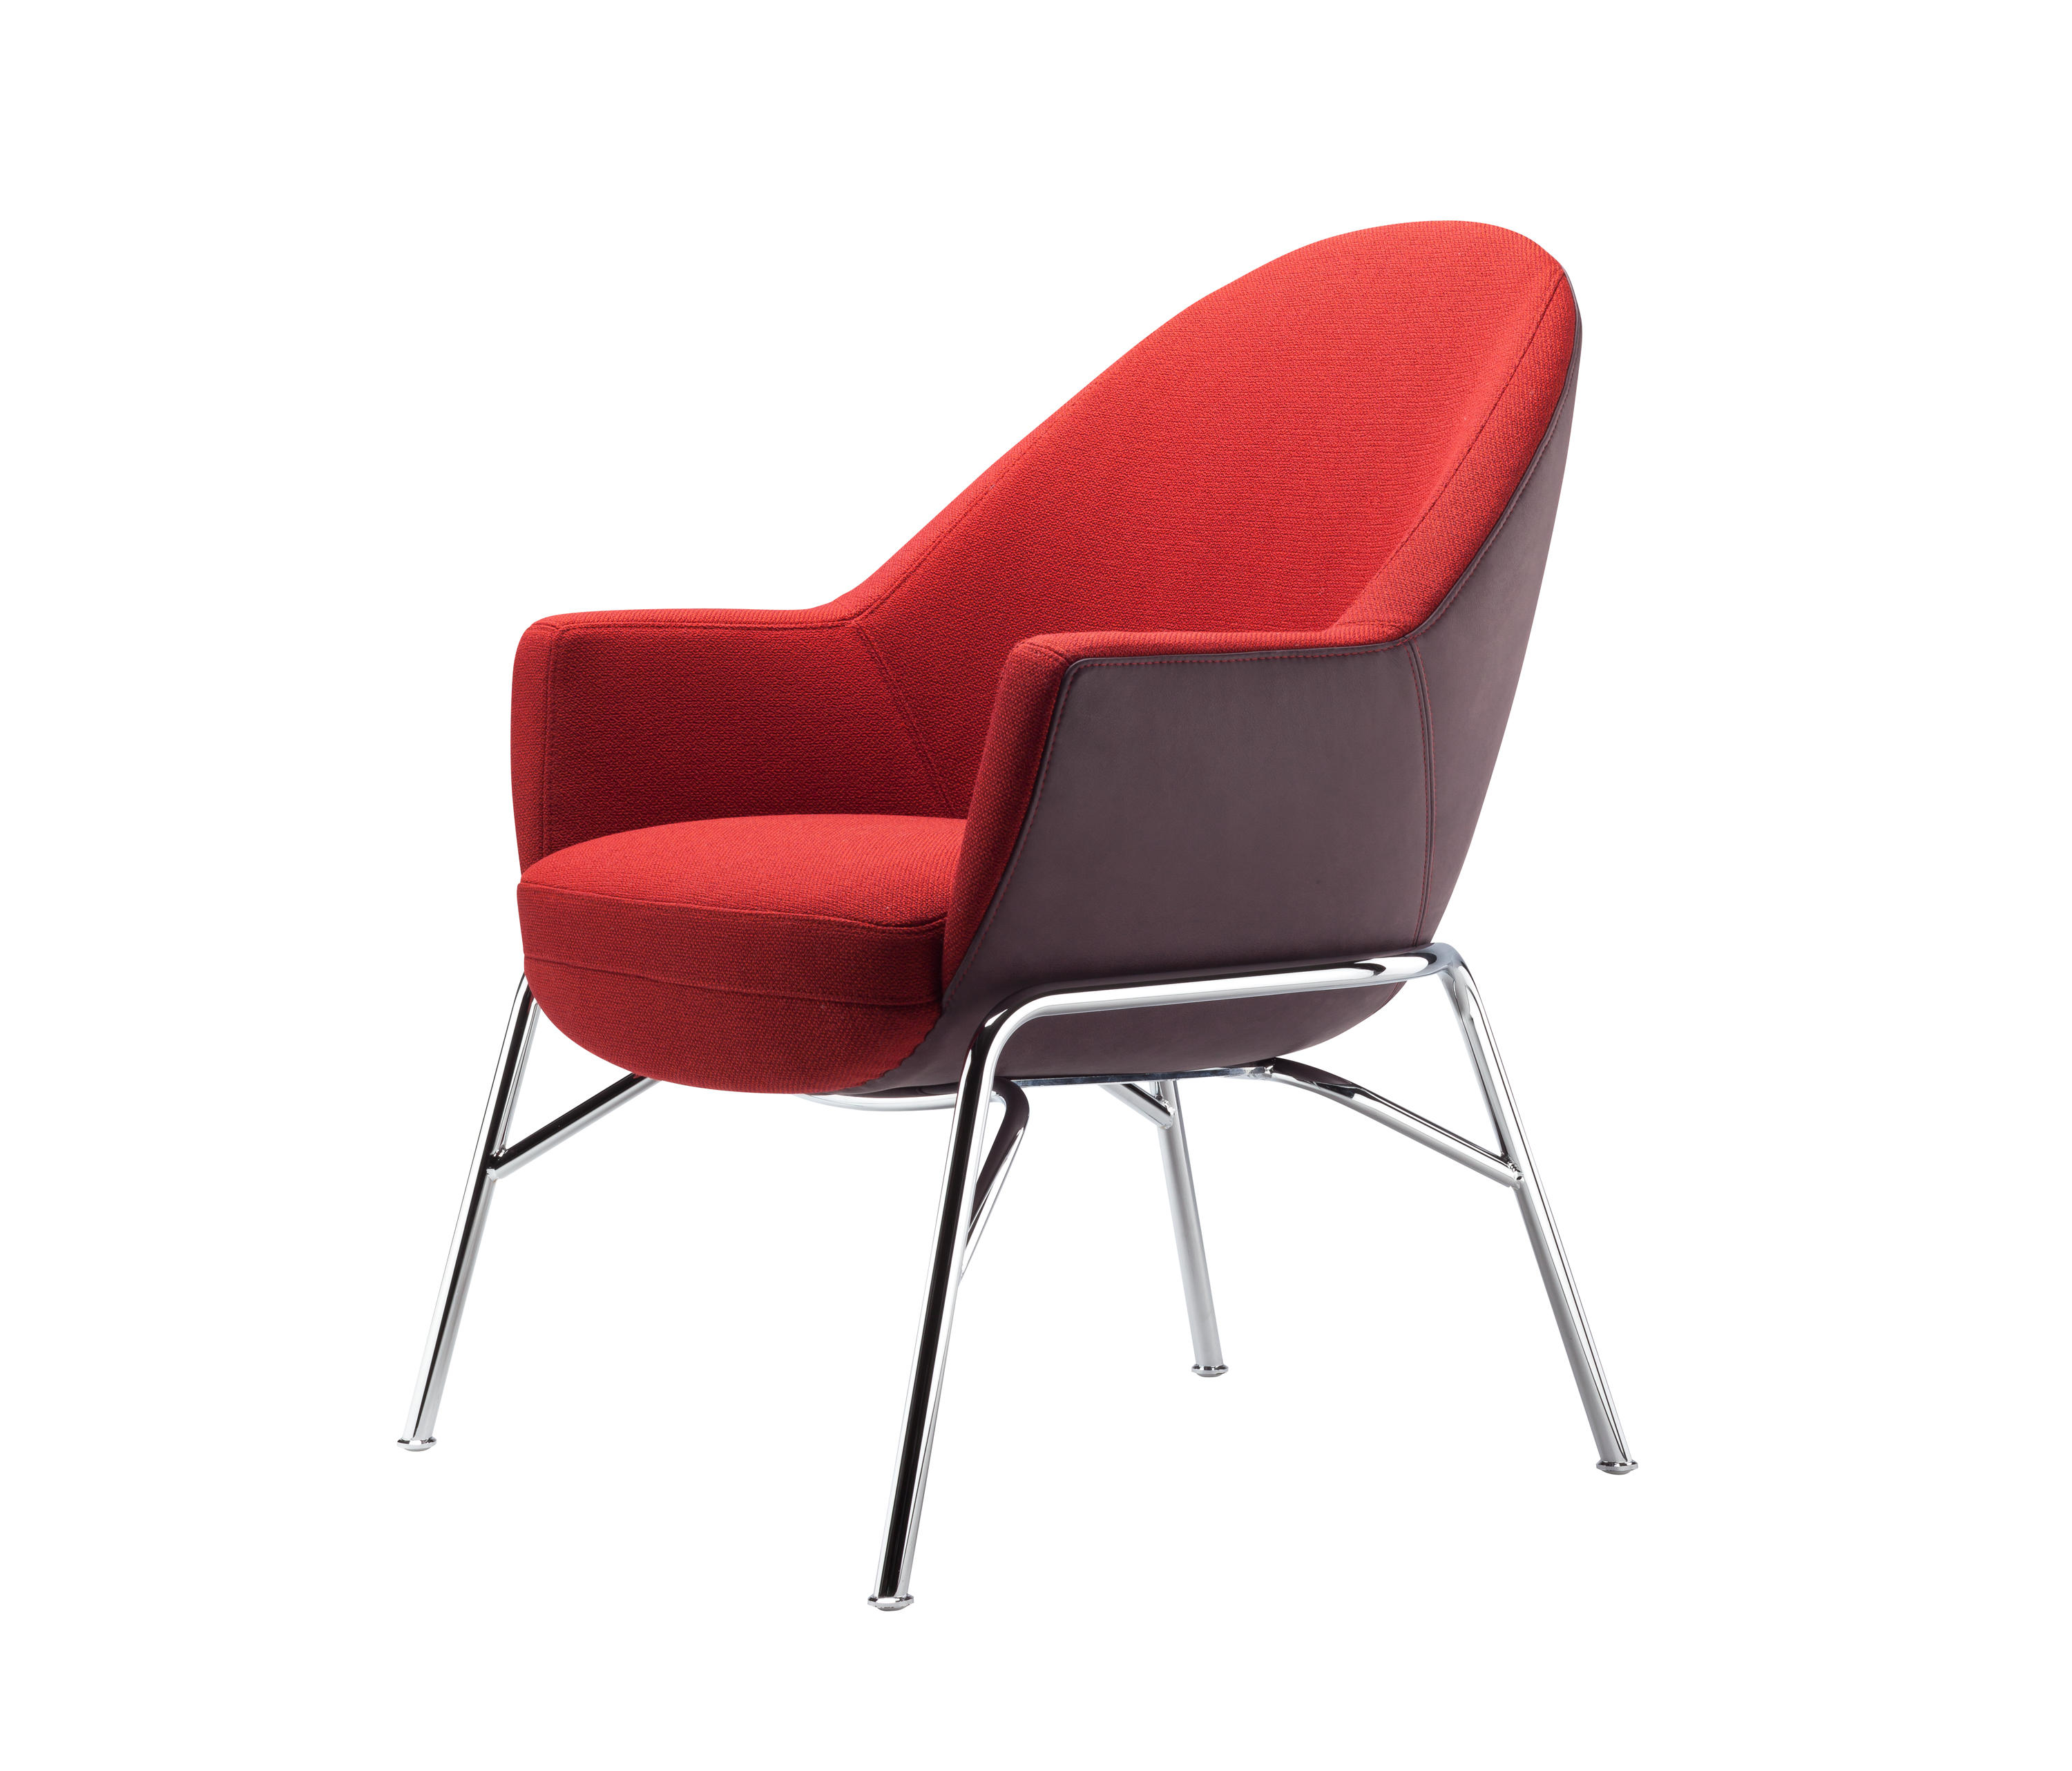 S 831 Armchairs From Thonet Architonic